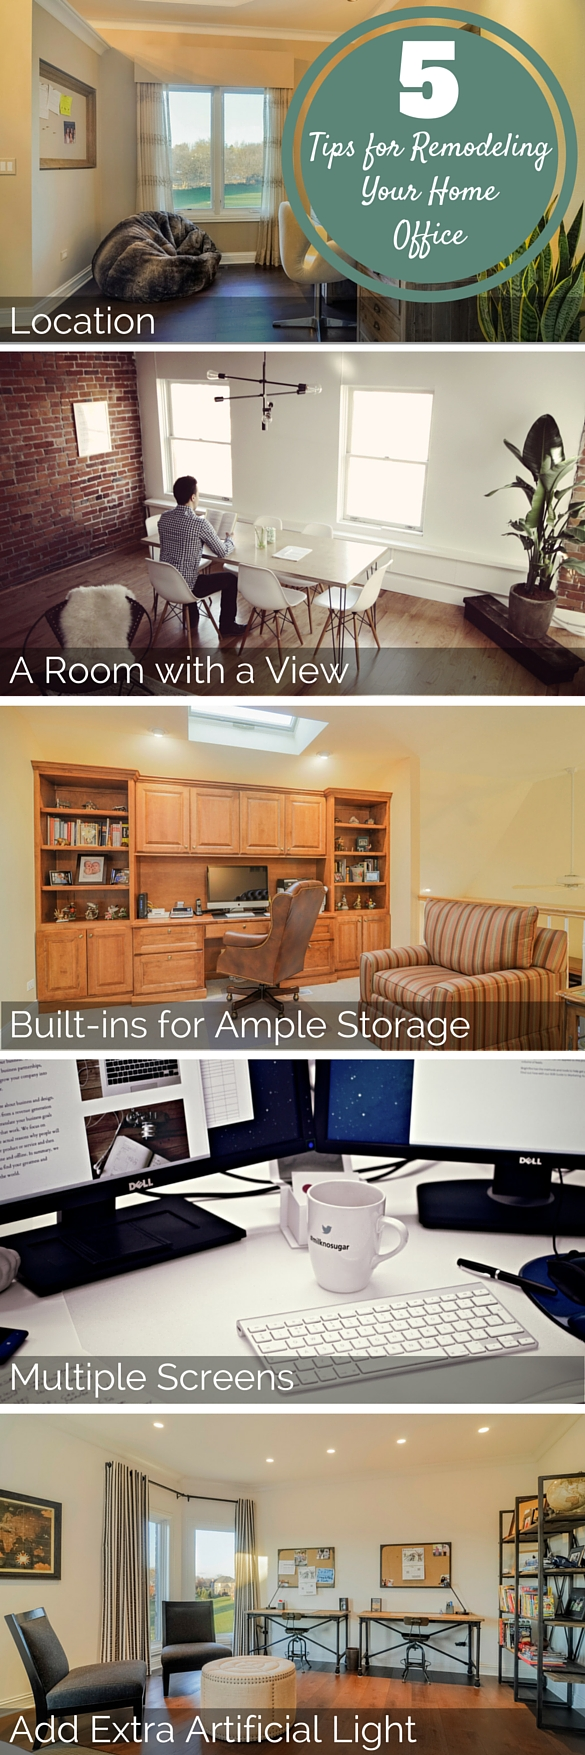 5 Tips for Remodeling Your Home Office